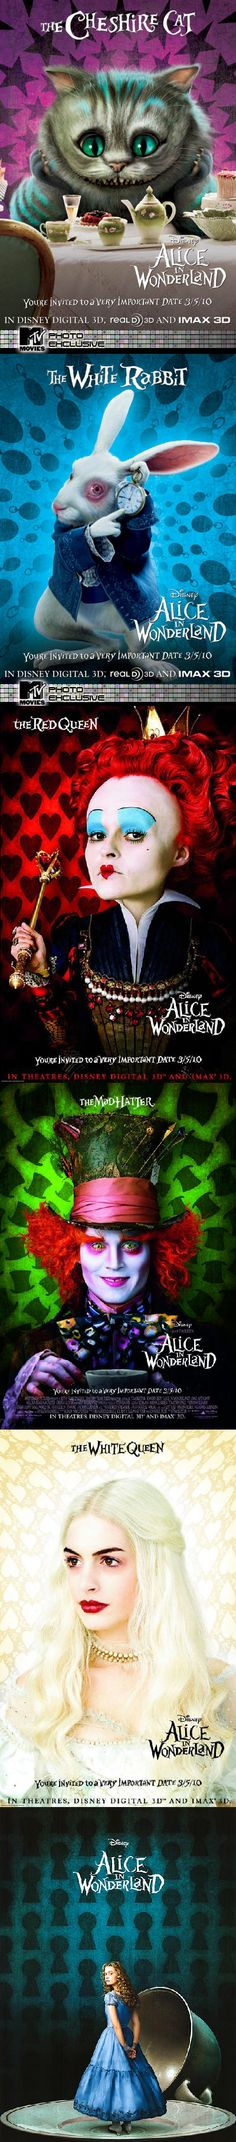 Alice In Wonderland - Tim Burton  Absolutely love this movie